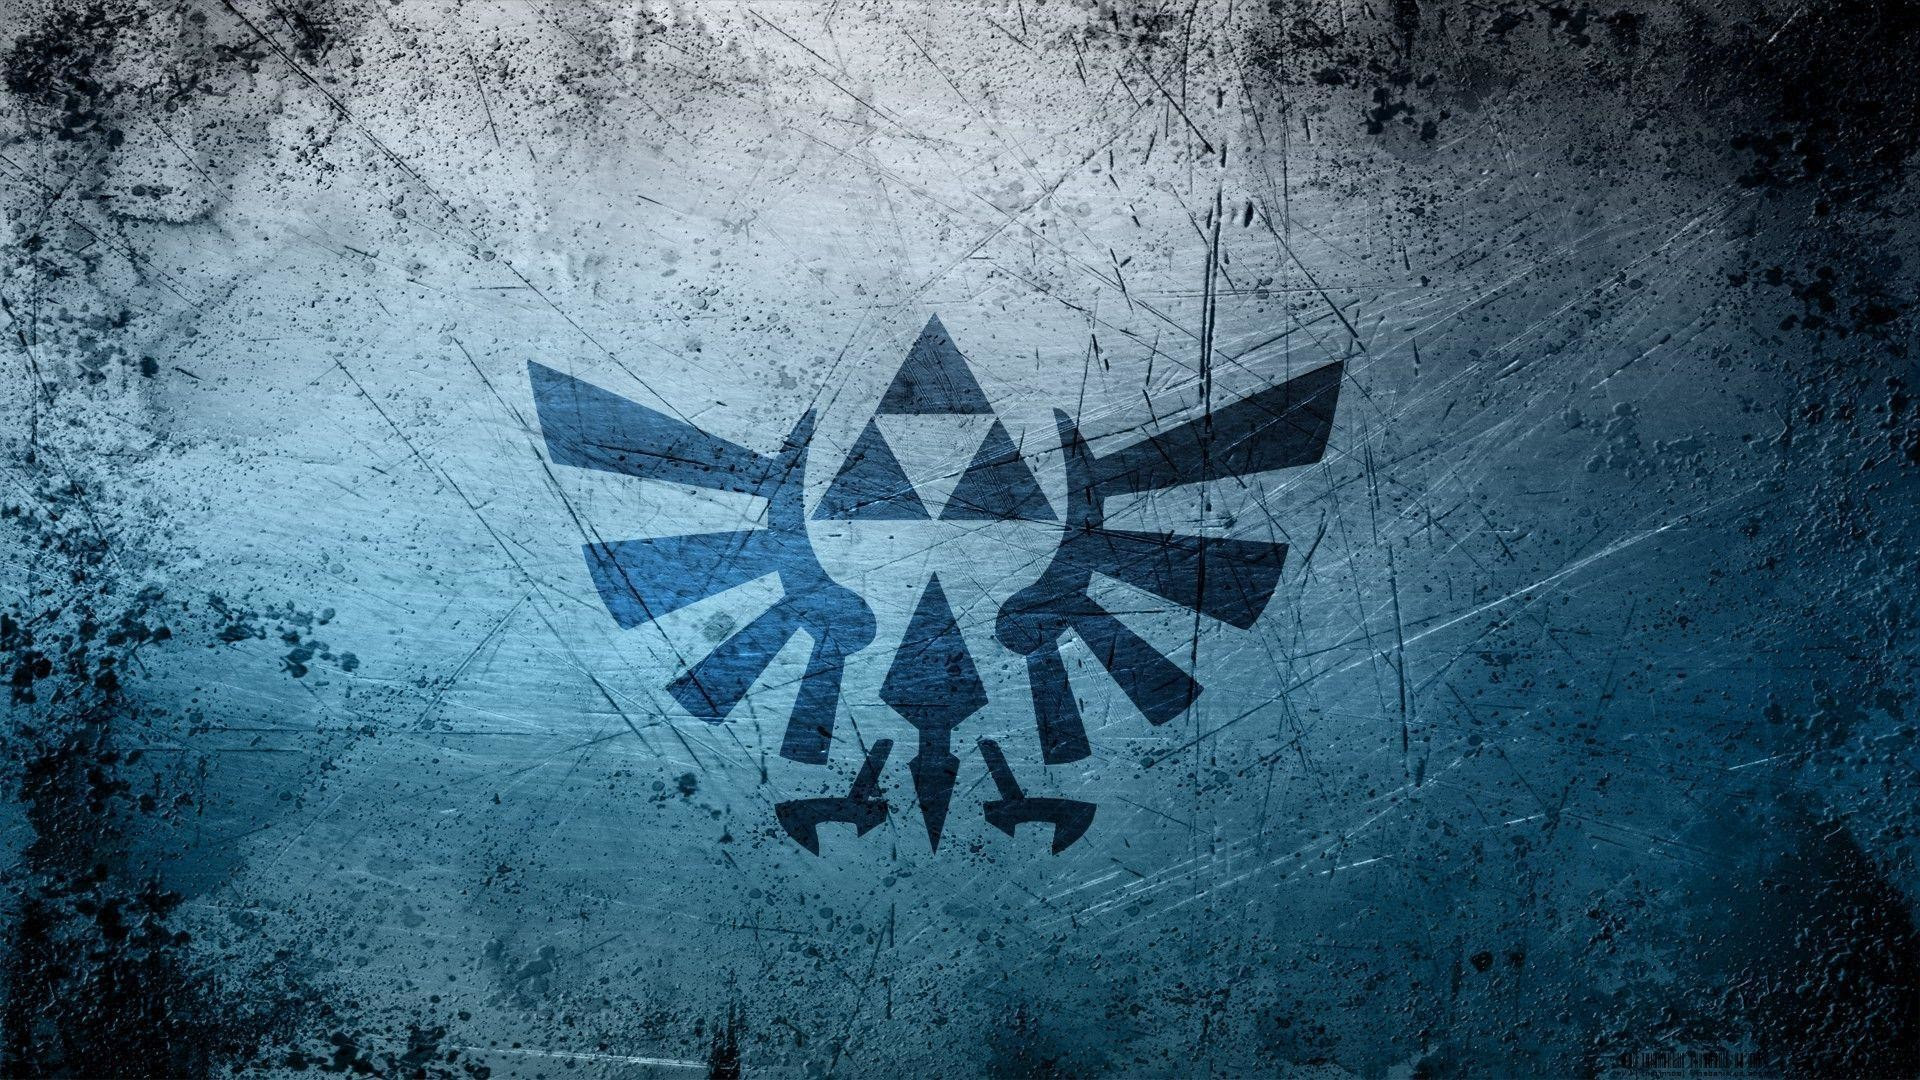 Legend Of Zelda Wallpaper 75 Images